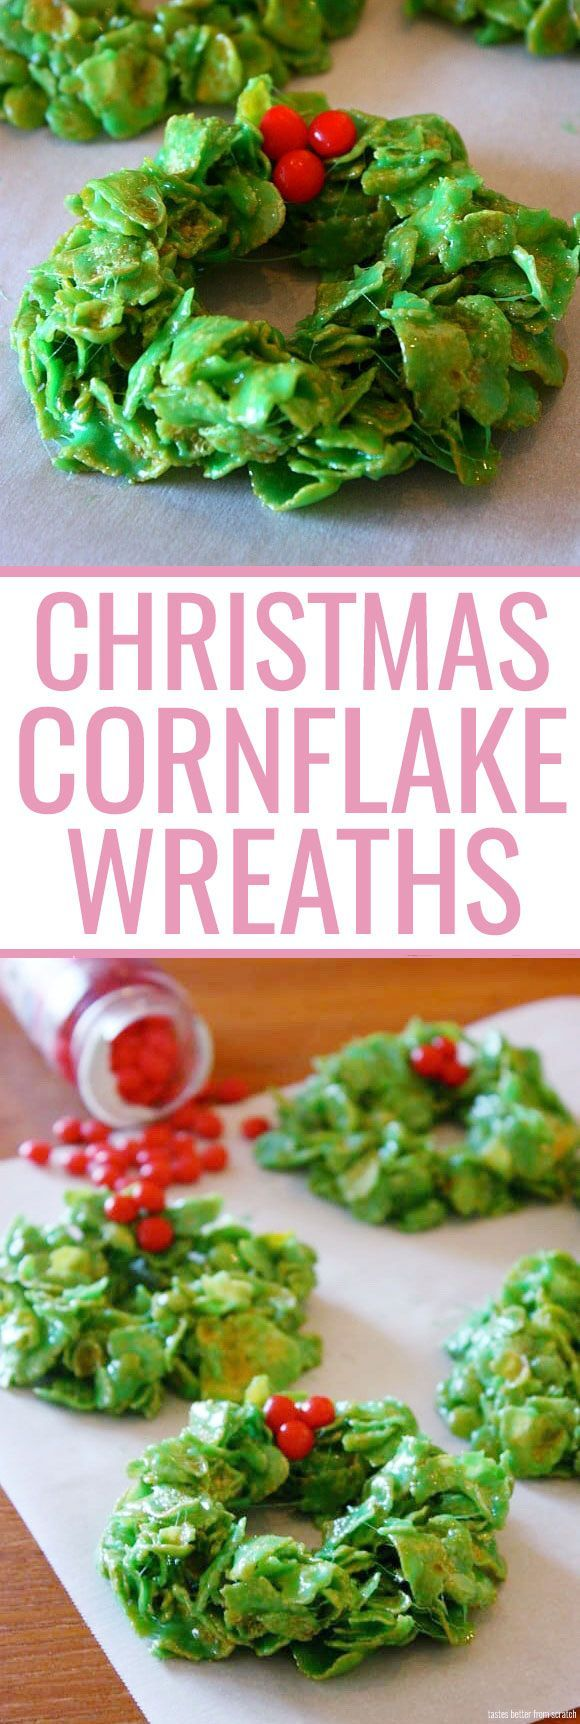 Christmas Cornflake Wreaths -